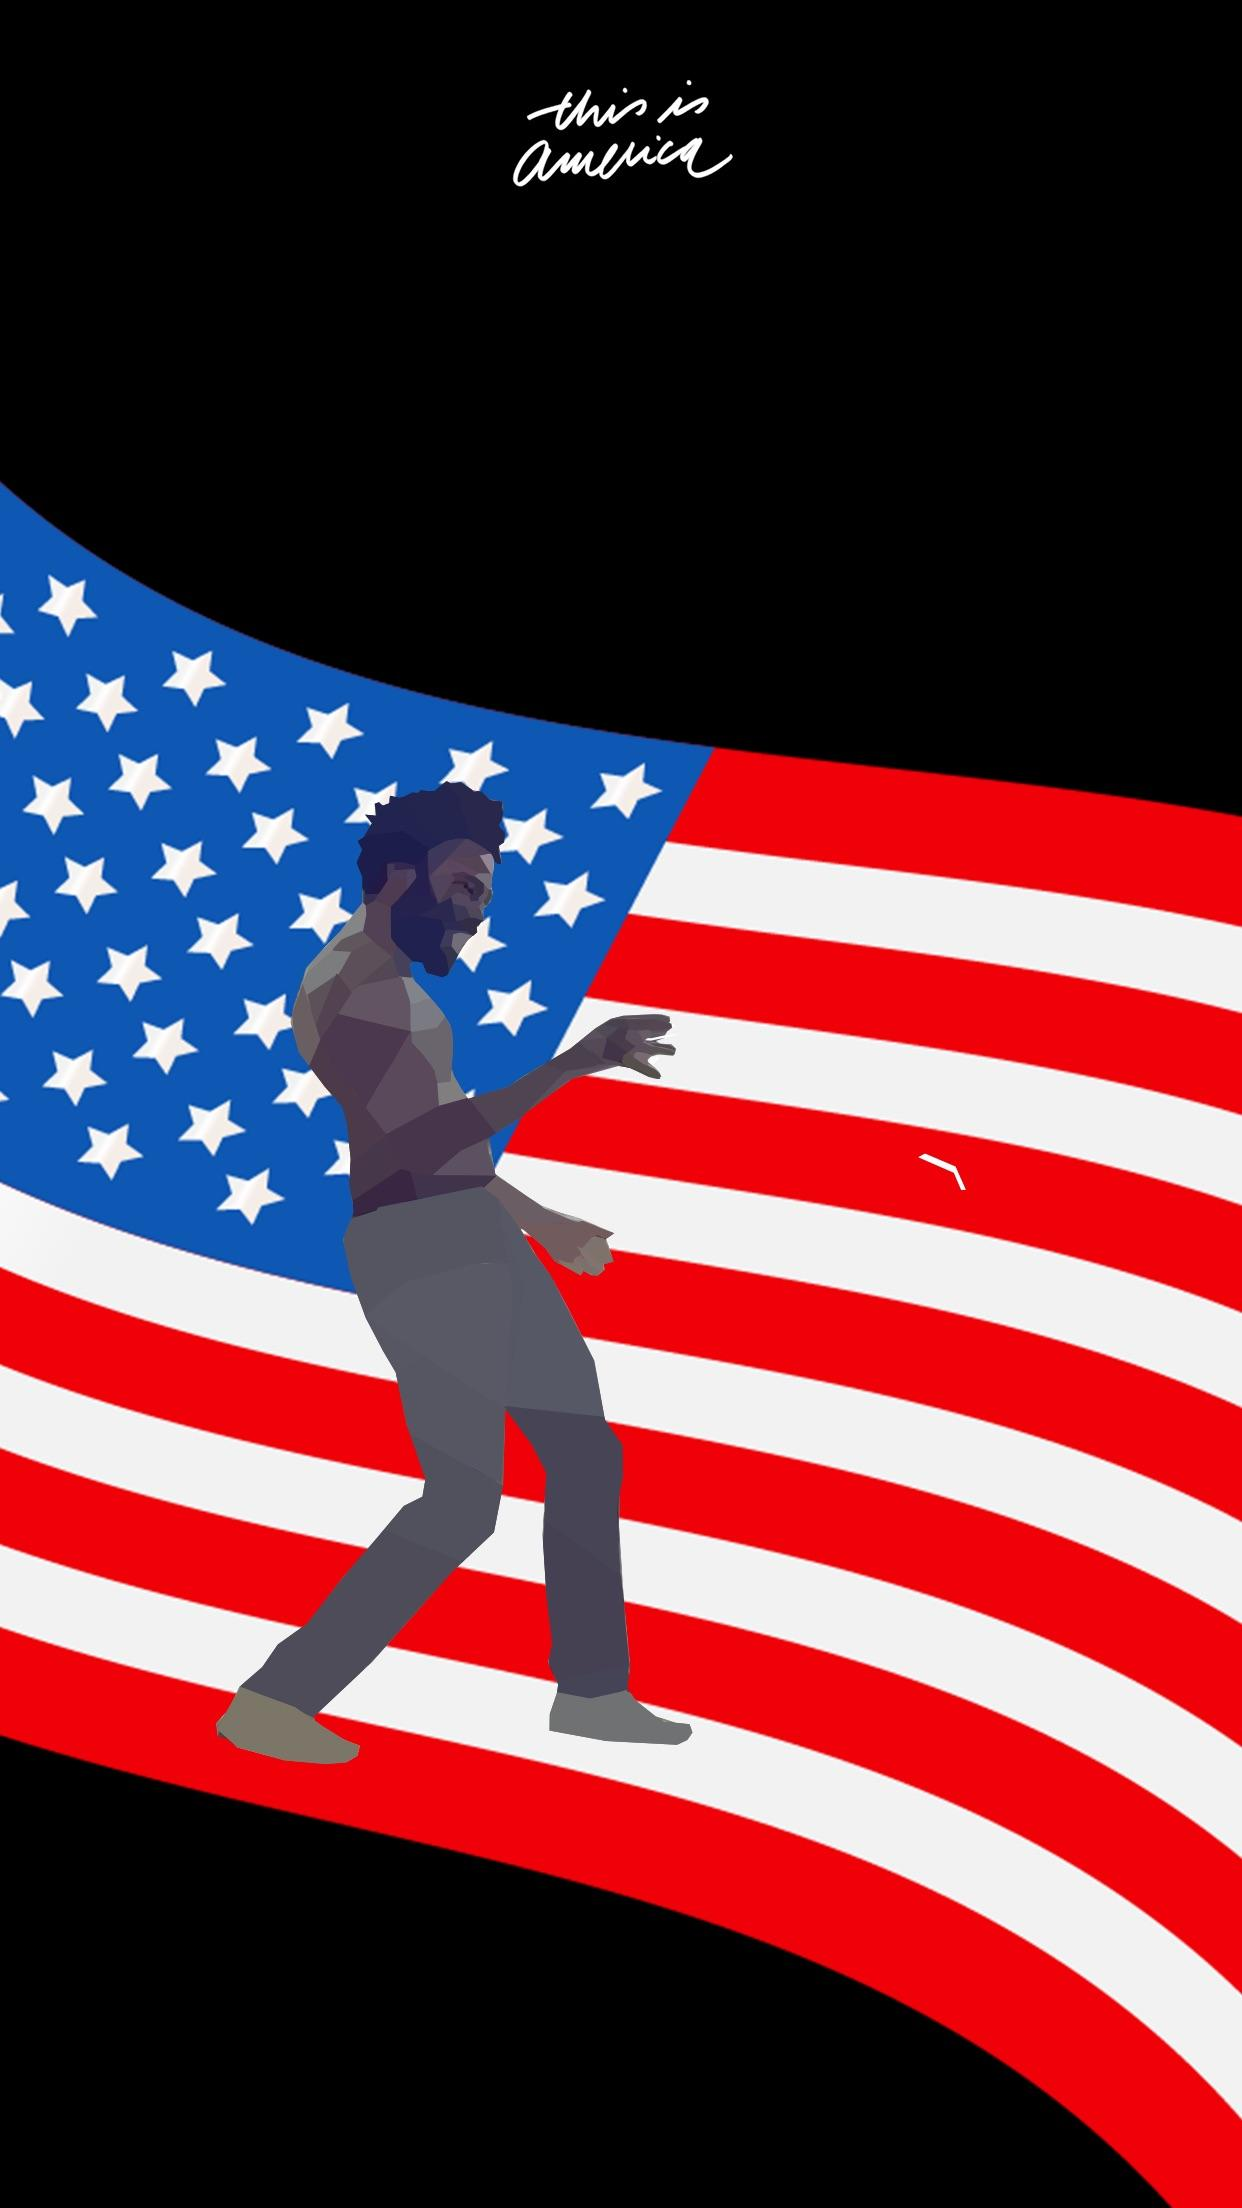 This is America lock screen wallpaper iOS that I made in low 1242x2208